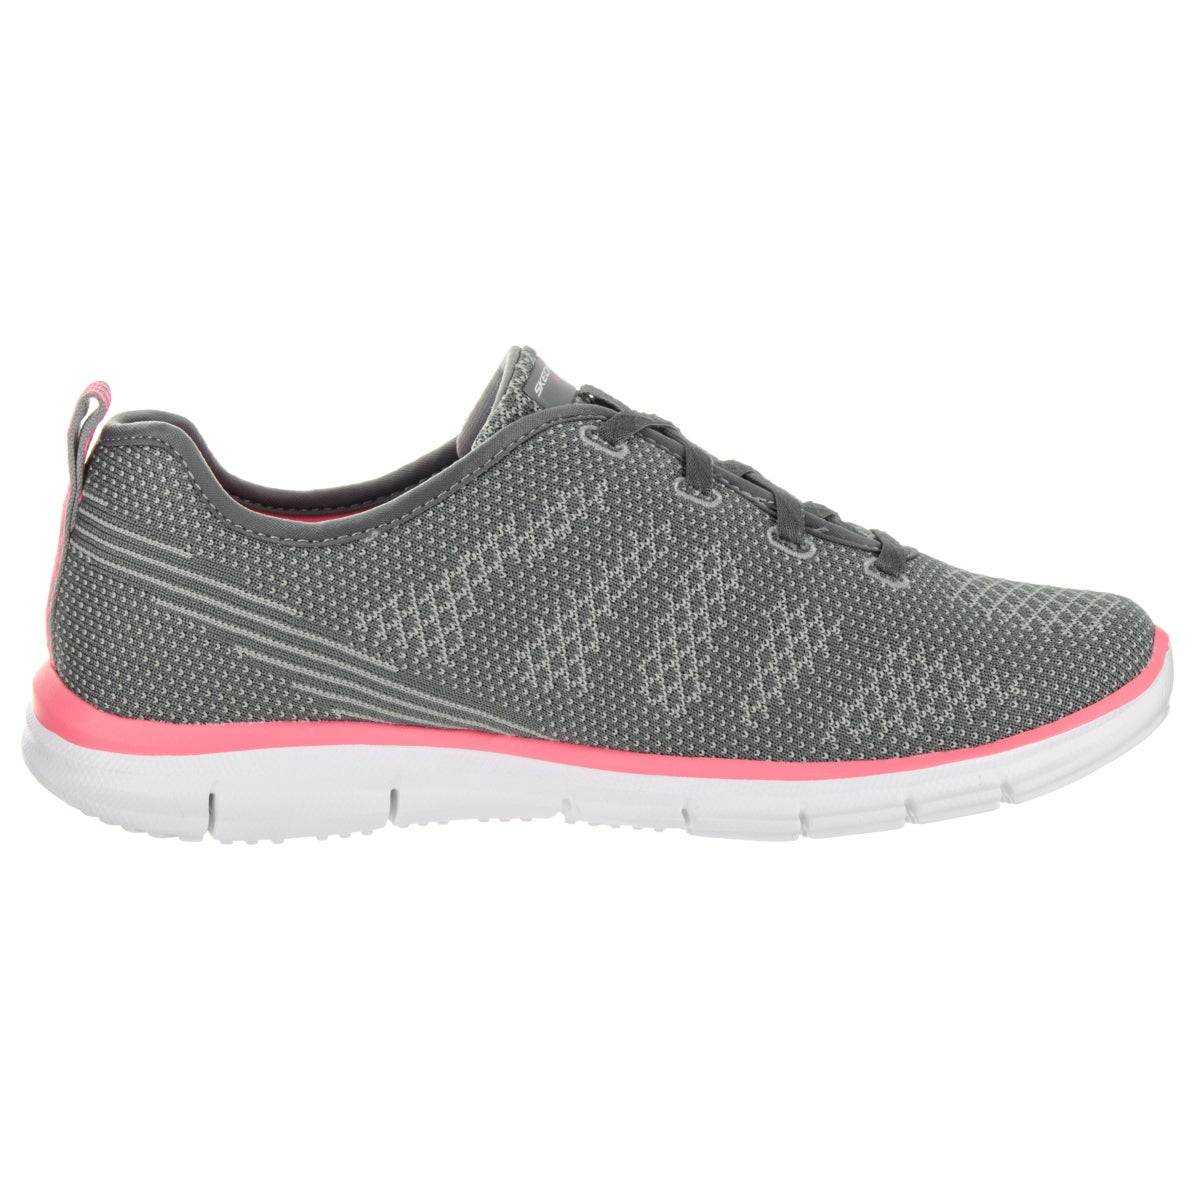 03d0bfb53cda Shop Skechers Women s Glider-Forever Young Grey Textile Casual Shoes - Free  Shipping On Orders Over  45 - Overstock - 13746918